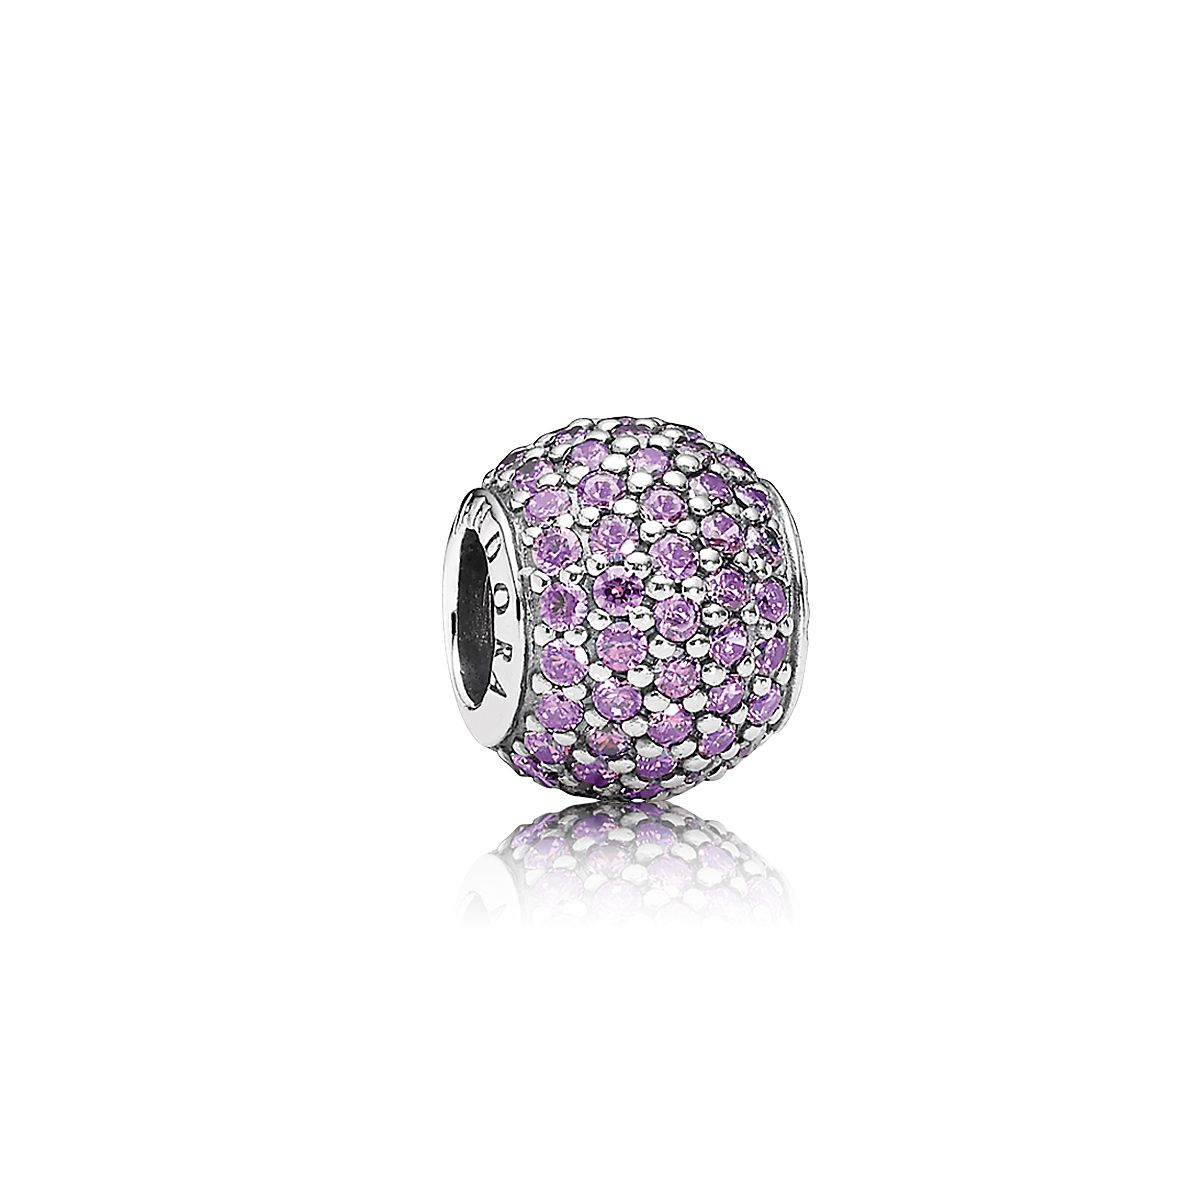 Fancy purple cubic zirconia pave silver charm